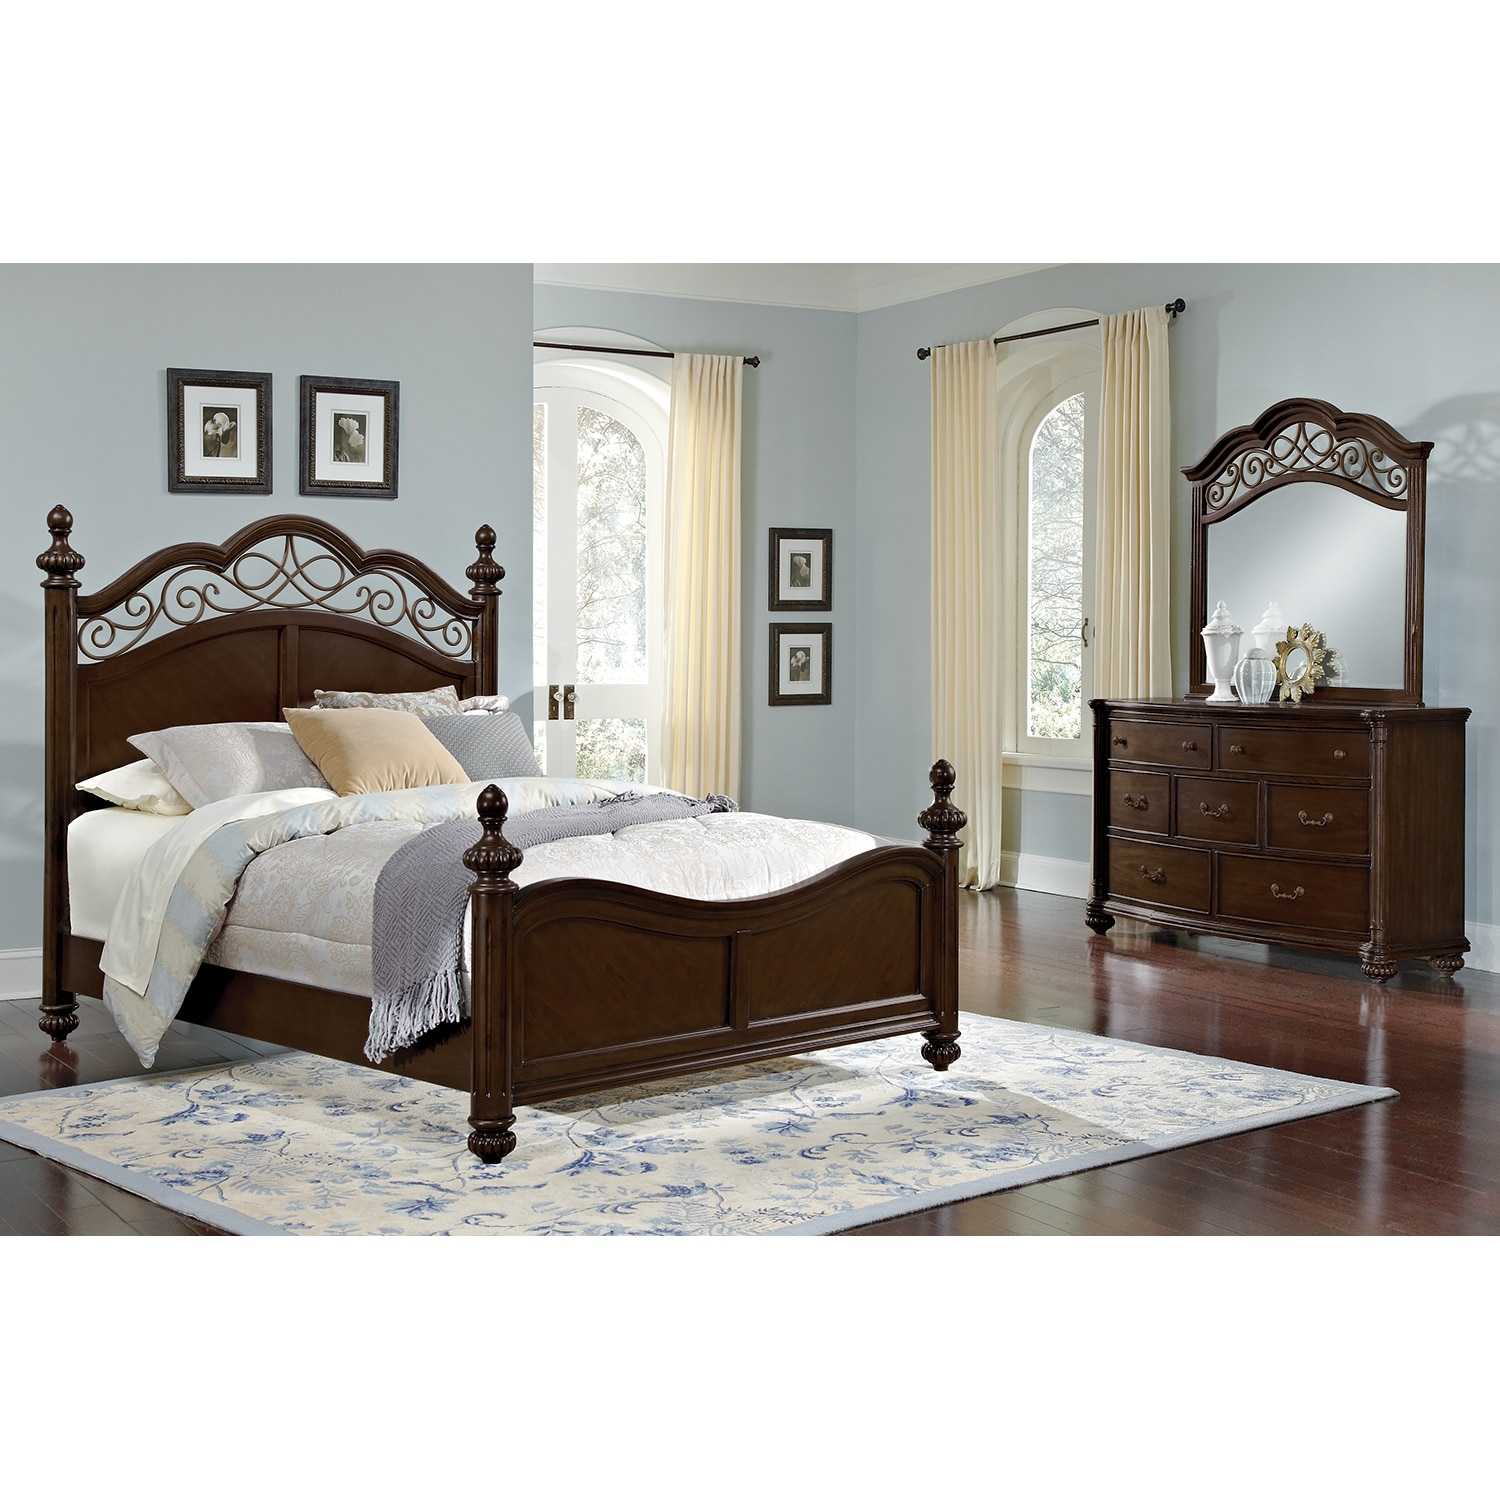 search a bedroom quick links see our bedroom packages